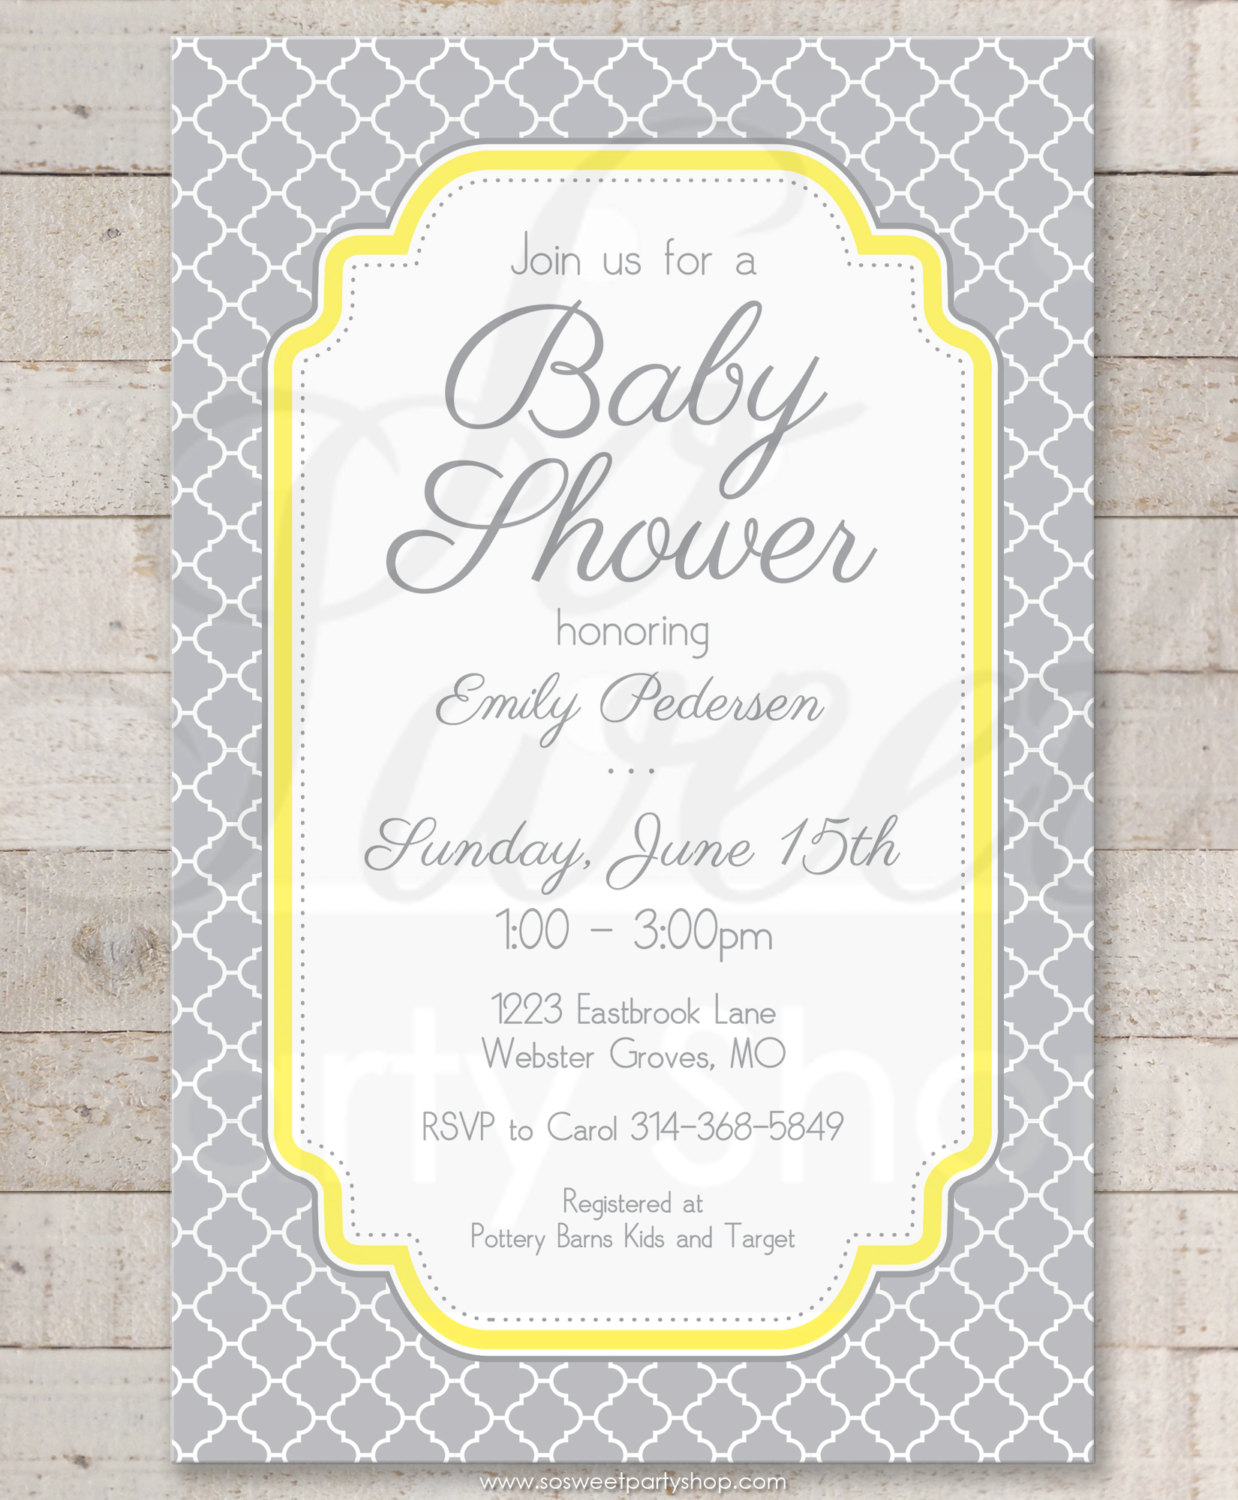 Baby shower invitations gray and yellow boy or girl baby shower baby shower invitations filmwisefo